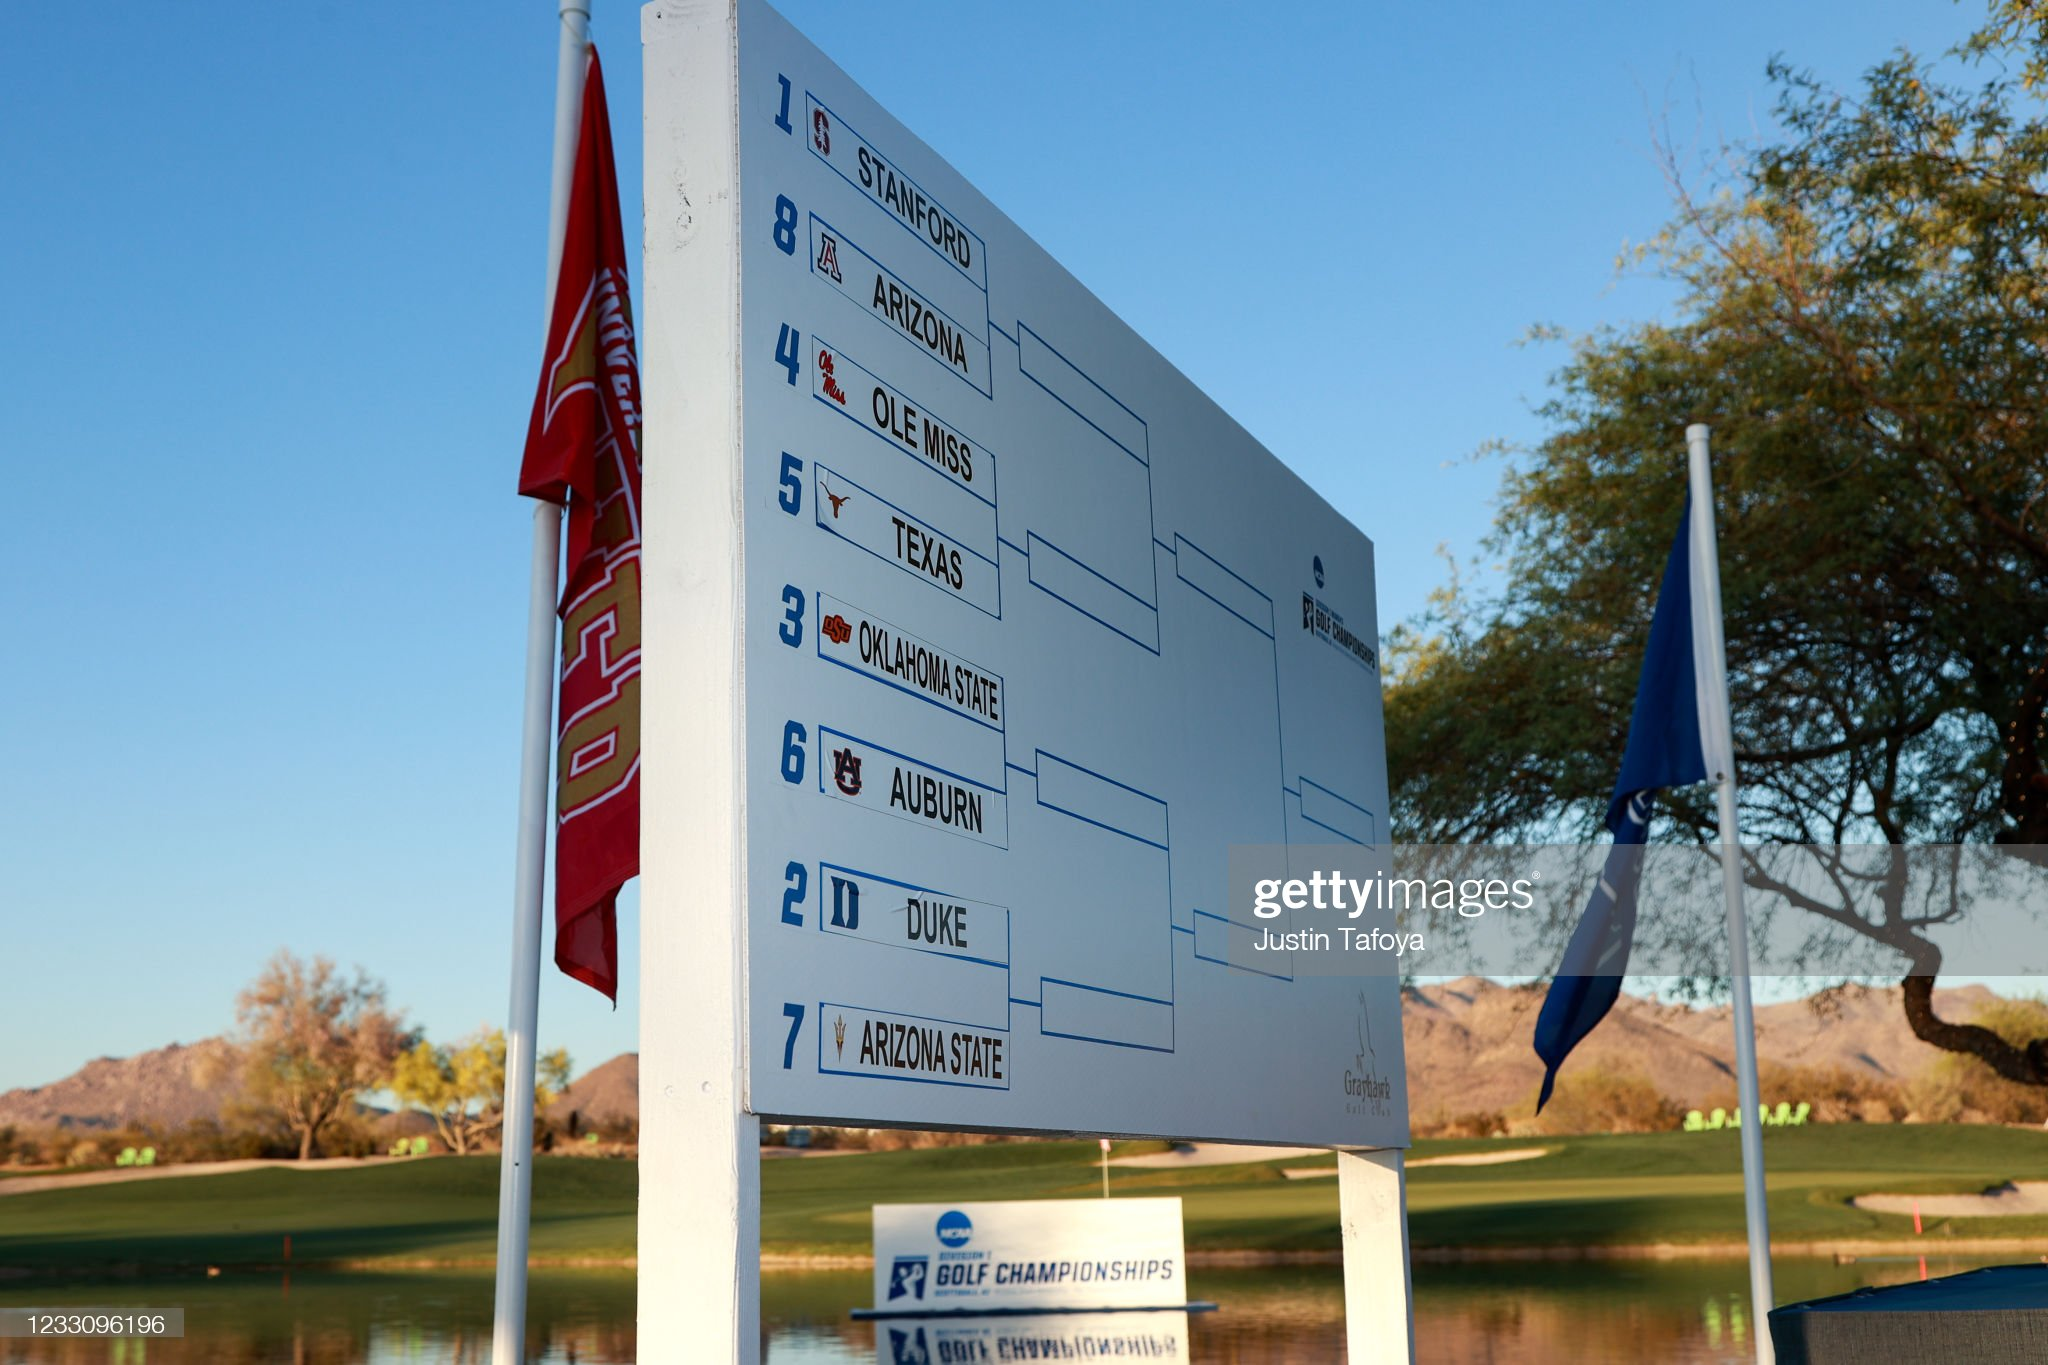 https://media.gettyimages.com/photos/the-match-play-pairings-are-posted-by-the-18th-hole-after-the-fourth-picture-id1233096196?s=2048x2048